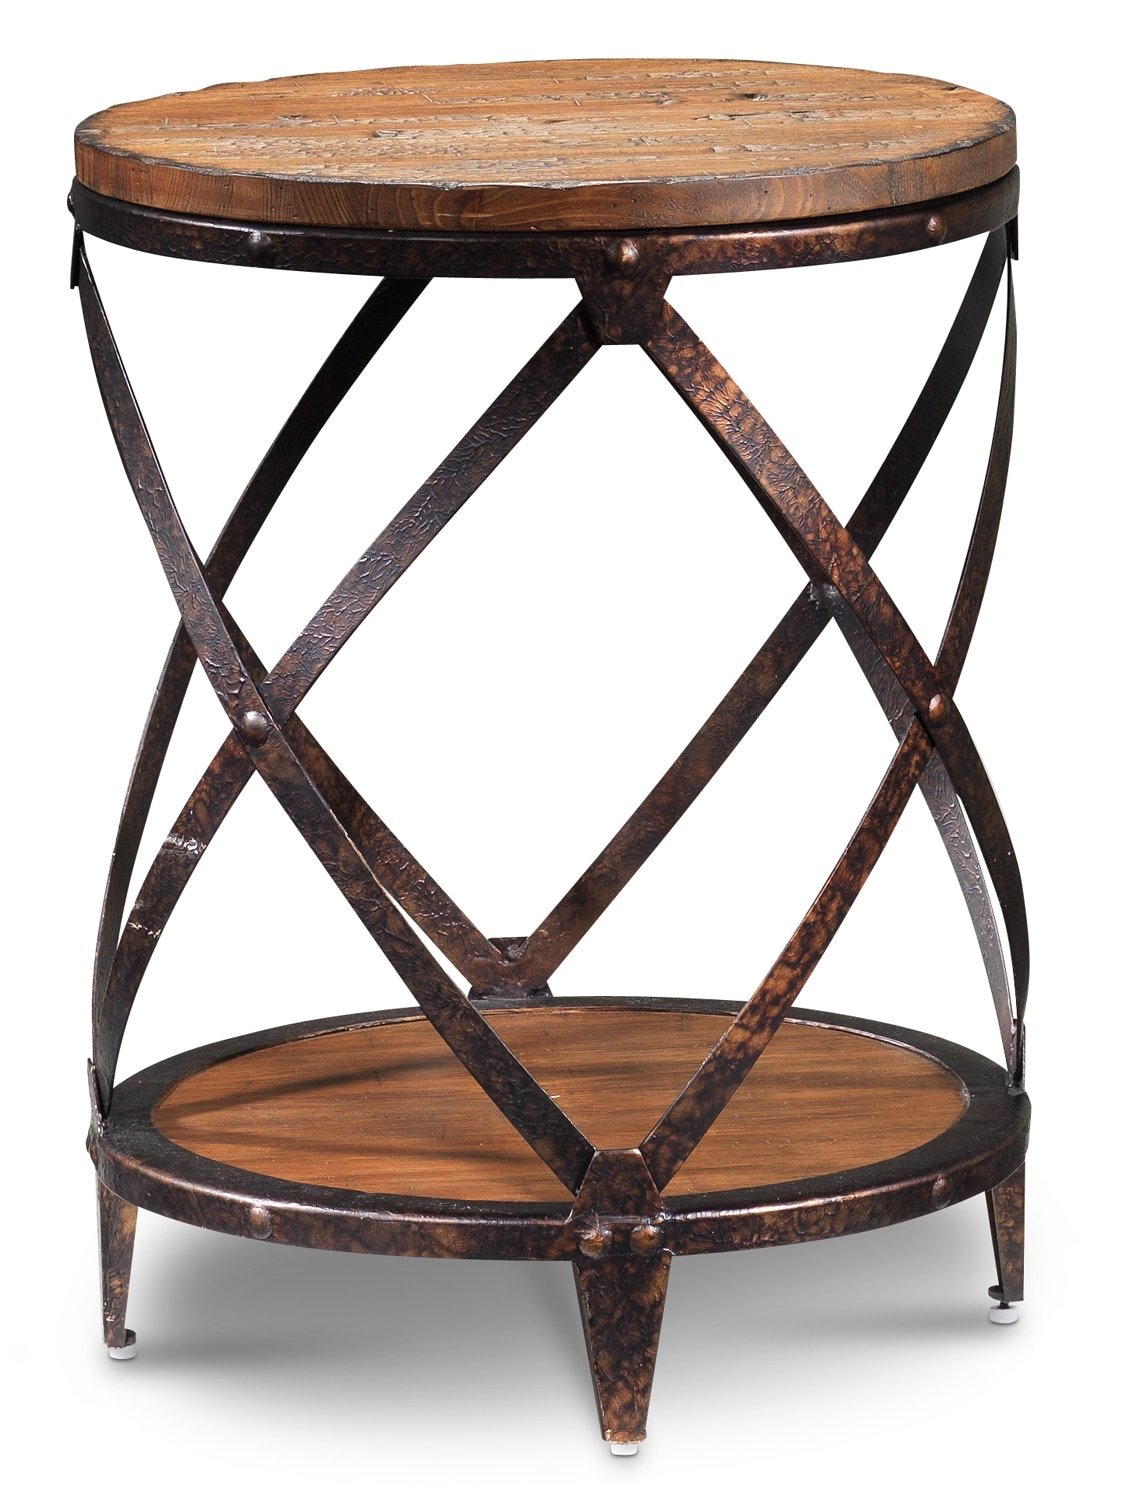 Accent and Occasional Furniture - Pinebrook Round End Table - Distressed Natural Pine